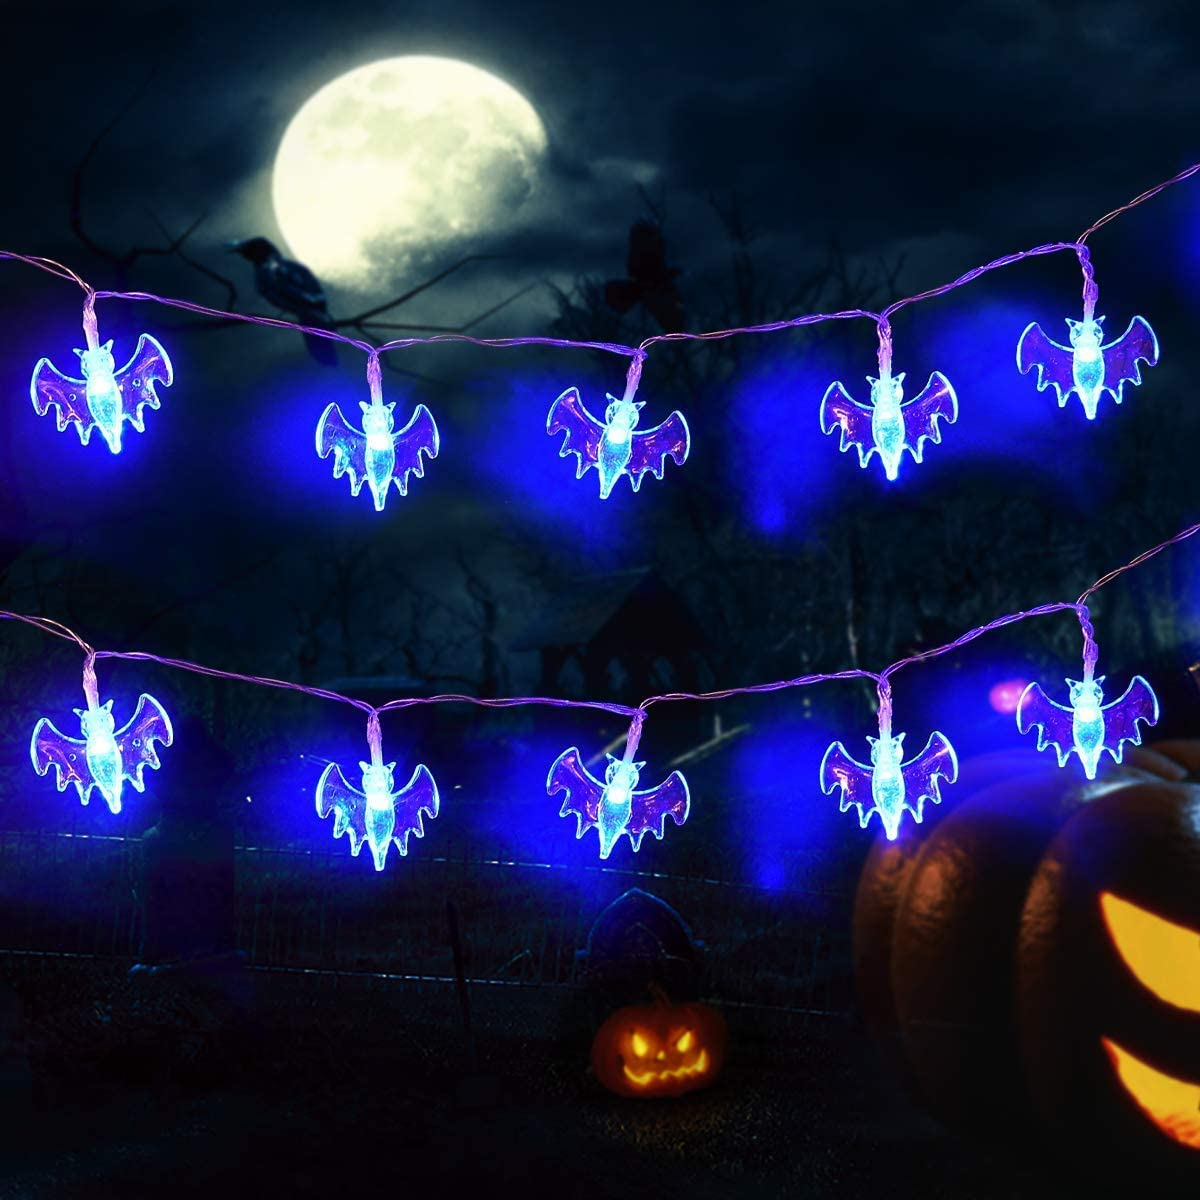 Halloween Bat String Lights, LED Waterproof Decoration String Lights For Halloween Party Holiday Yard Decorations Decor,Halloween Night Light